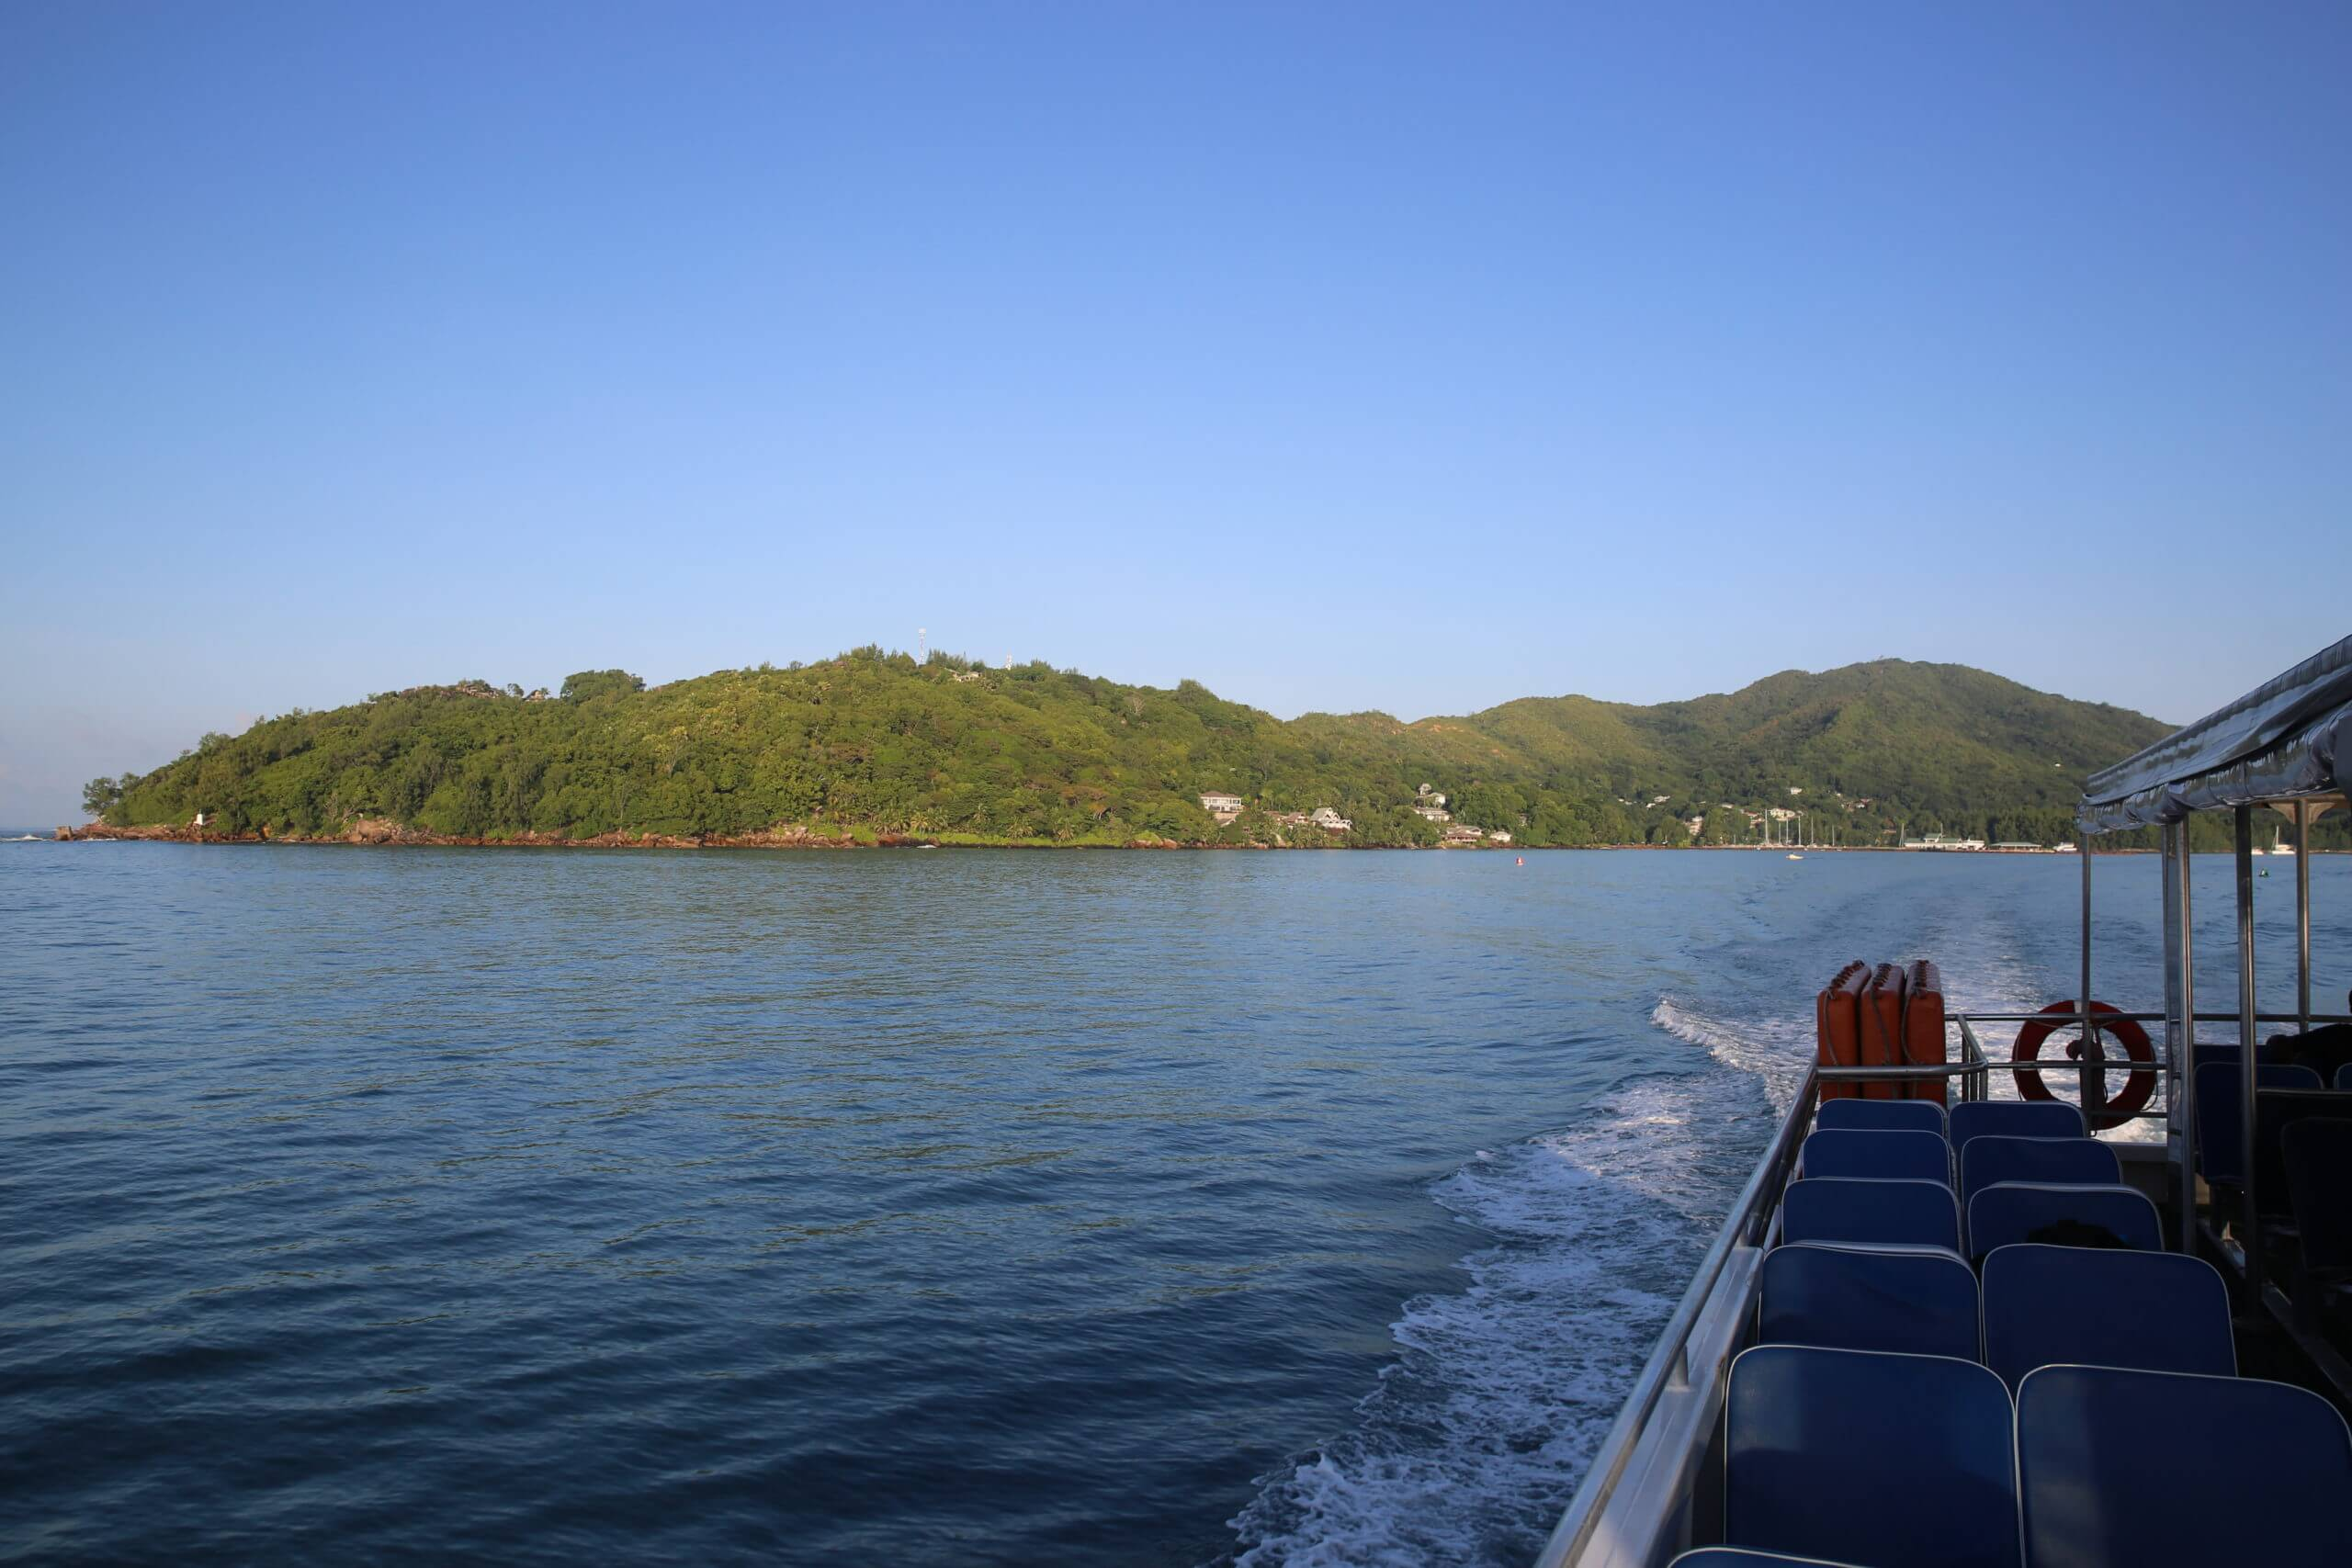 Departing Praslin island for La Digue, aboard the Cat Cocos ferry.